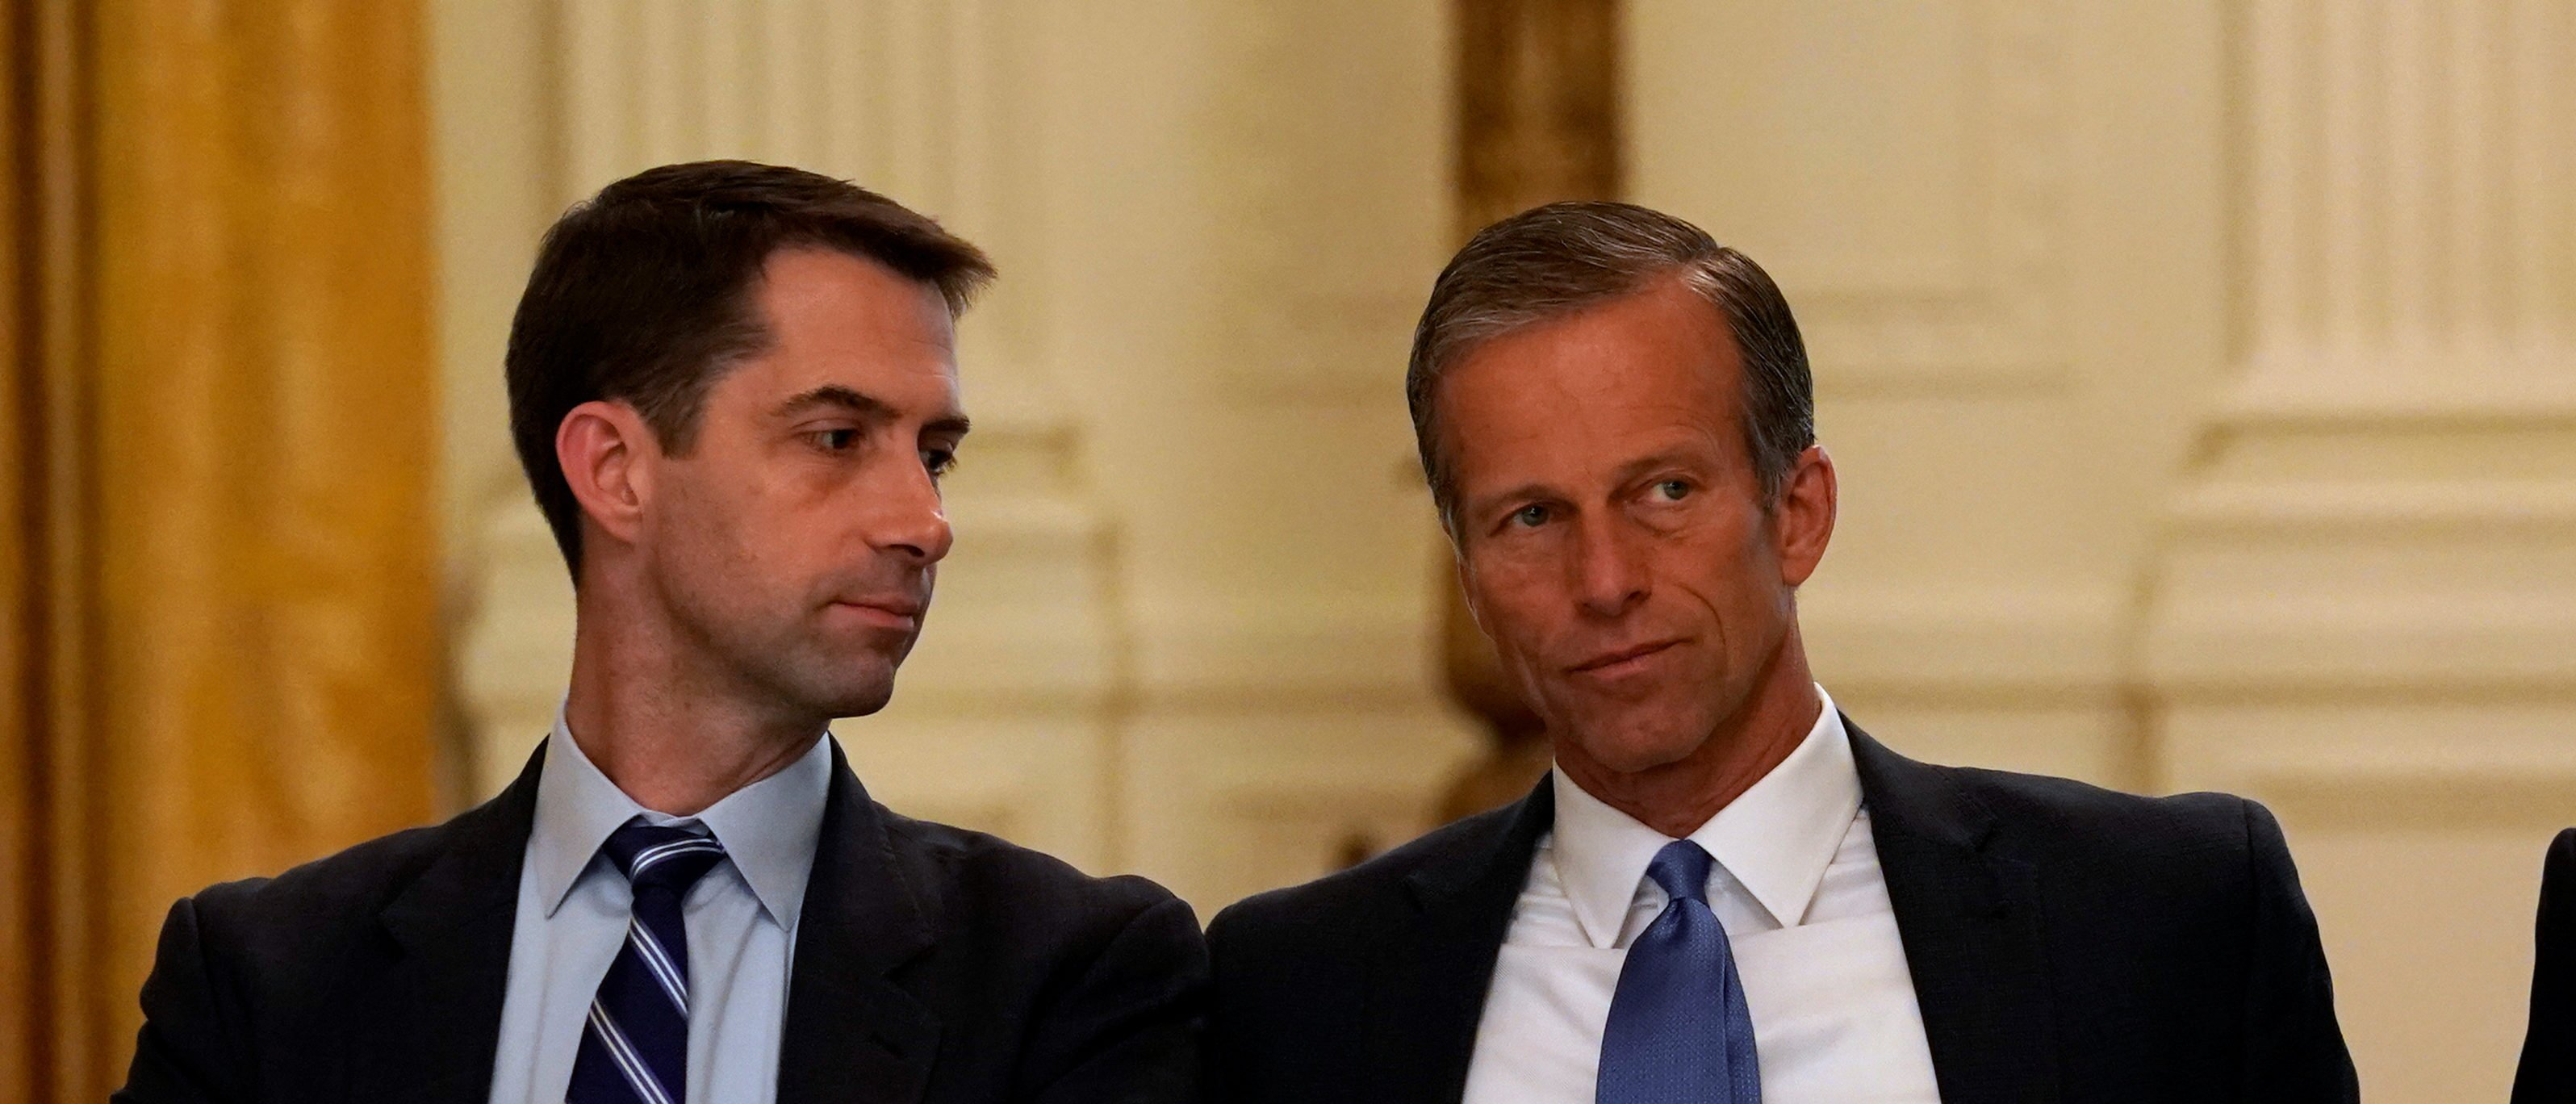 Senators Tom Cotton, L, (R-AR) John Thune, C, (R-SD) and Senate Majority Leader Mitch McConnell, R, attend a meeting called by U.S. President Donald Trump on healthcare in the East Room of the White House in Washington, U.S., June 27, 2017. REUTERS/Kevin Lamarque